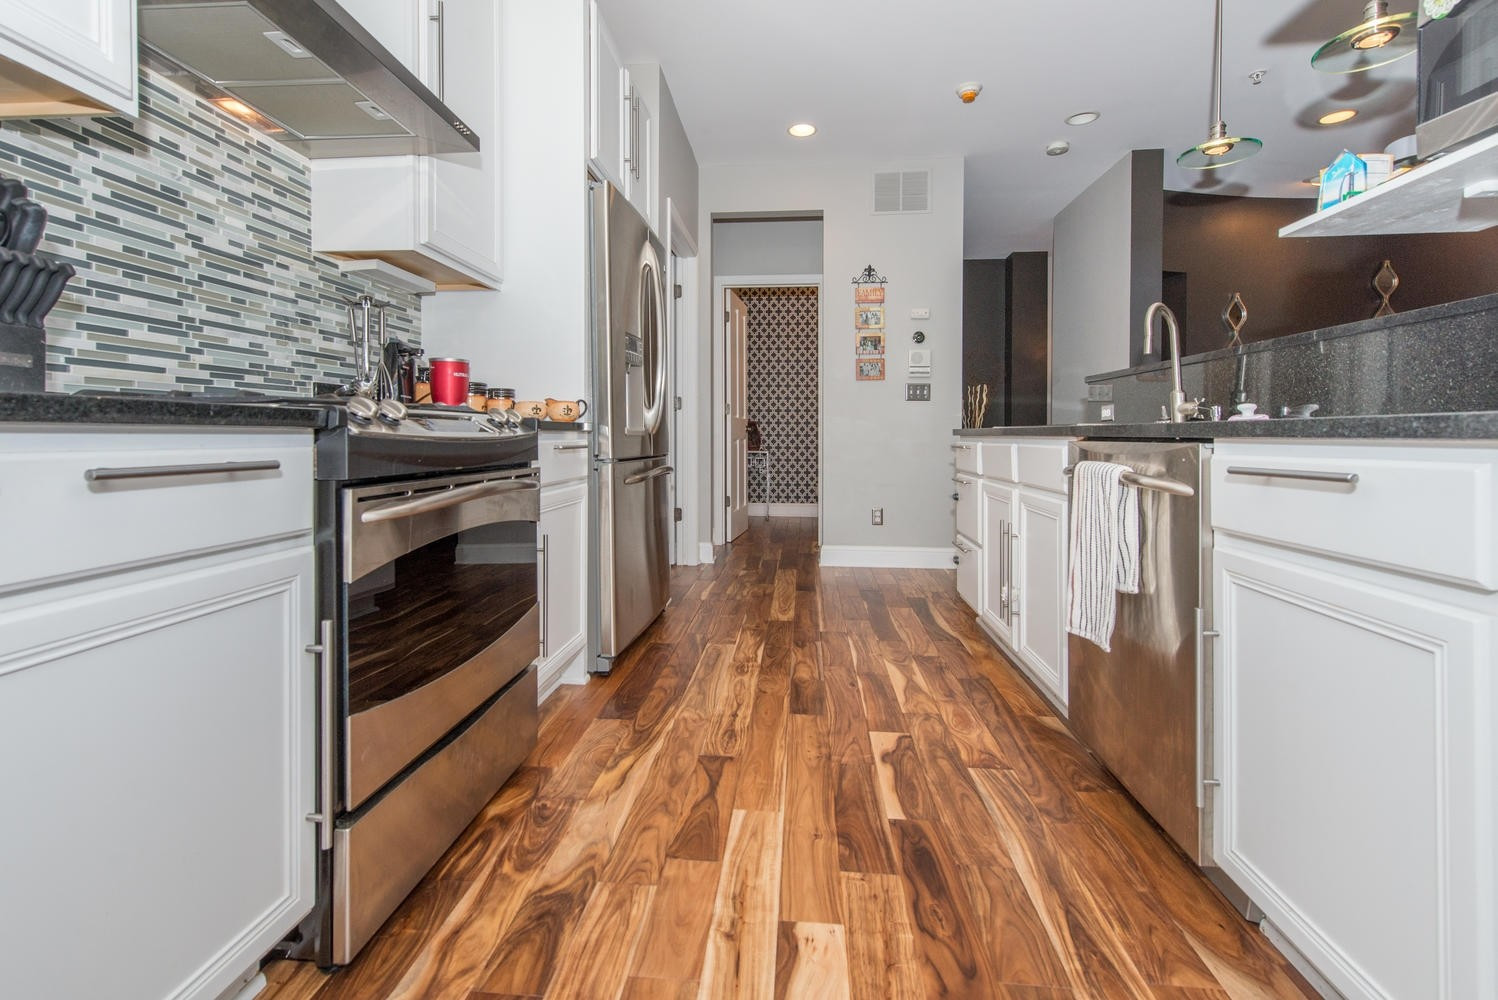 7 Inch Wide Engineered Hardwood Flooring Of 9 Mile Creek Acacia Hand Scraped Acacia Confusa Wood Floors In Acacia Handscraped Natural Hardwood Flooring Living Room Acacia Engineered Kitchen Acacia Engineered